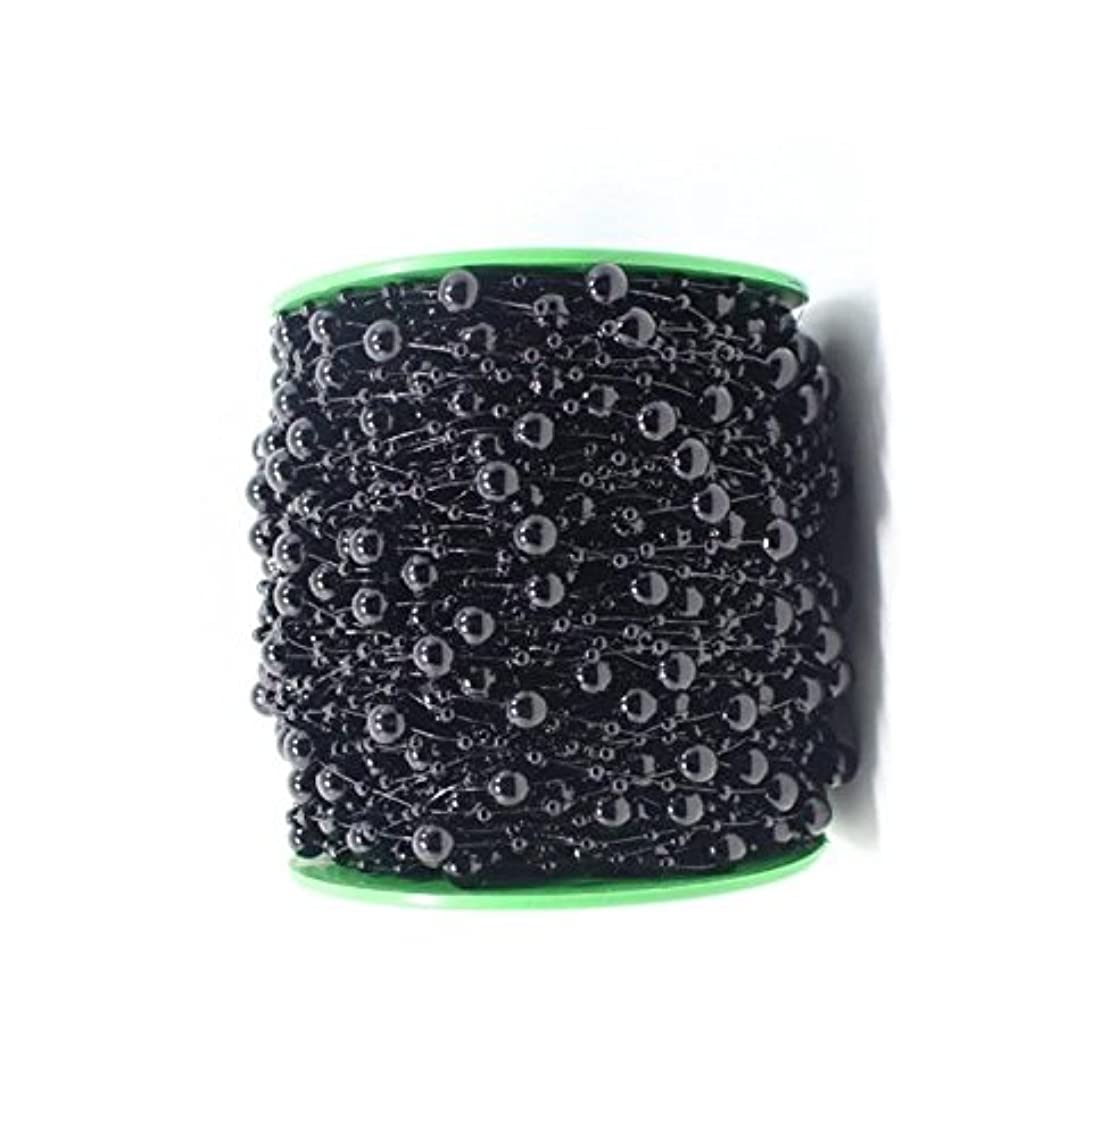 Pearl Bead Roll Faux Pearls Beads String By the Roll Faux Crystal Beads Garland 200Ft ABS Cuttable for Christmas Tree Decoration, Valentine, Exhibition,Wedding, Clothing,Costume,DIY decoration( Black)